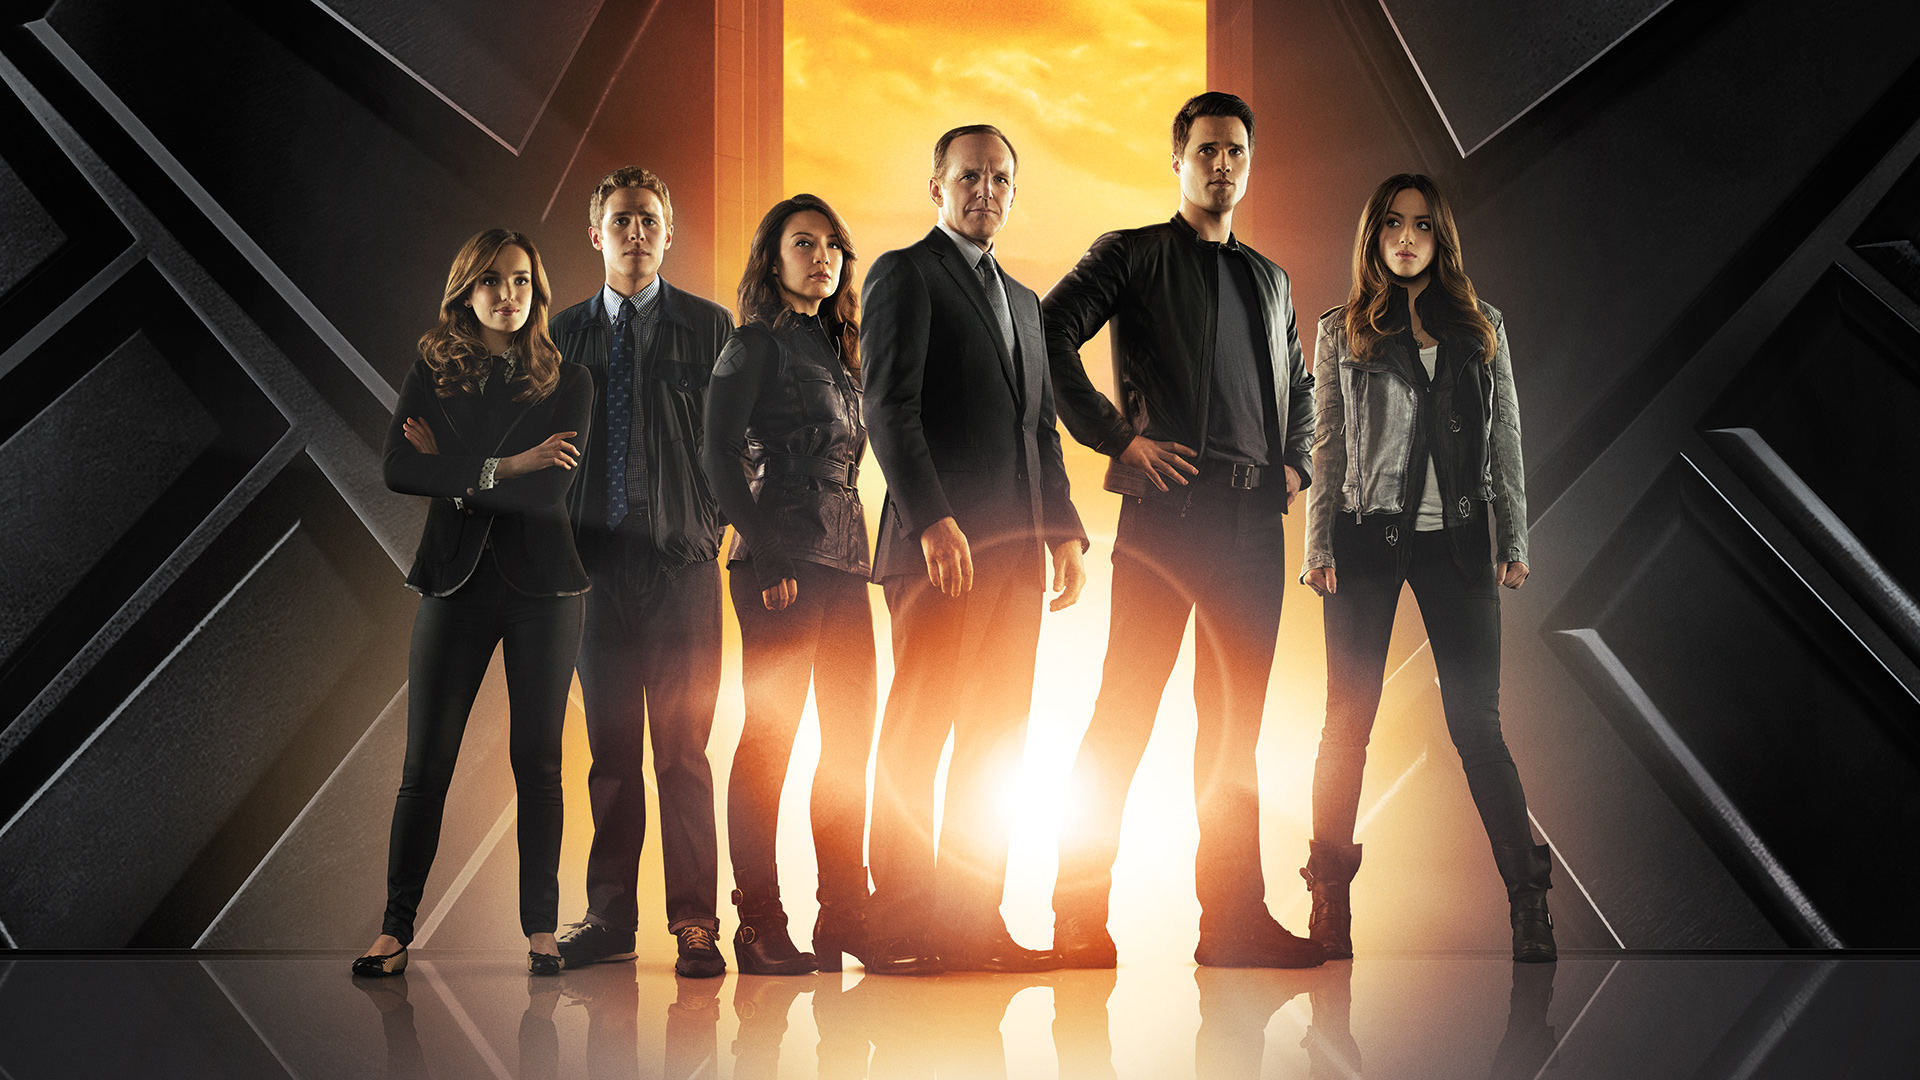 Lucy Lawless joins the cast of Agents of SHIELD